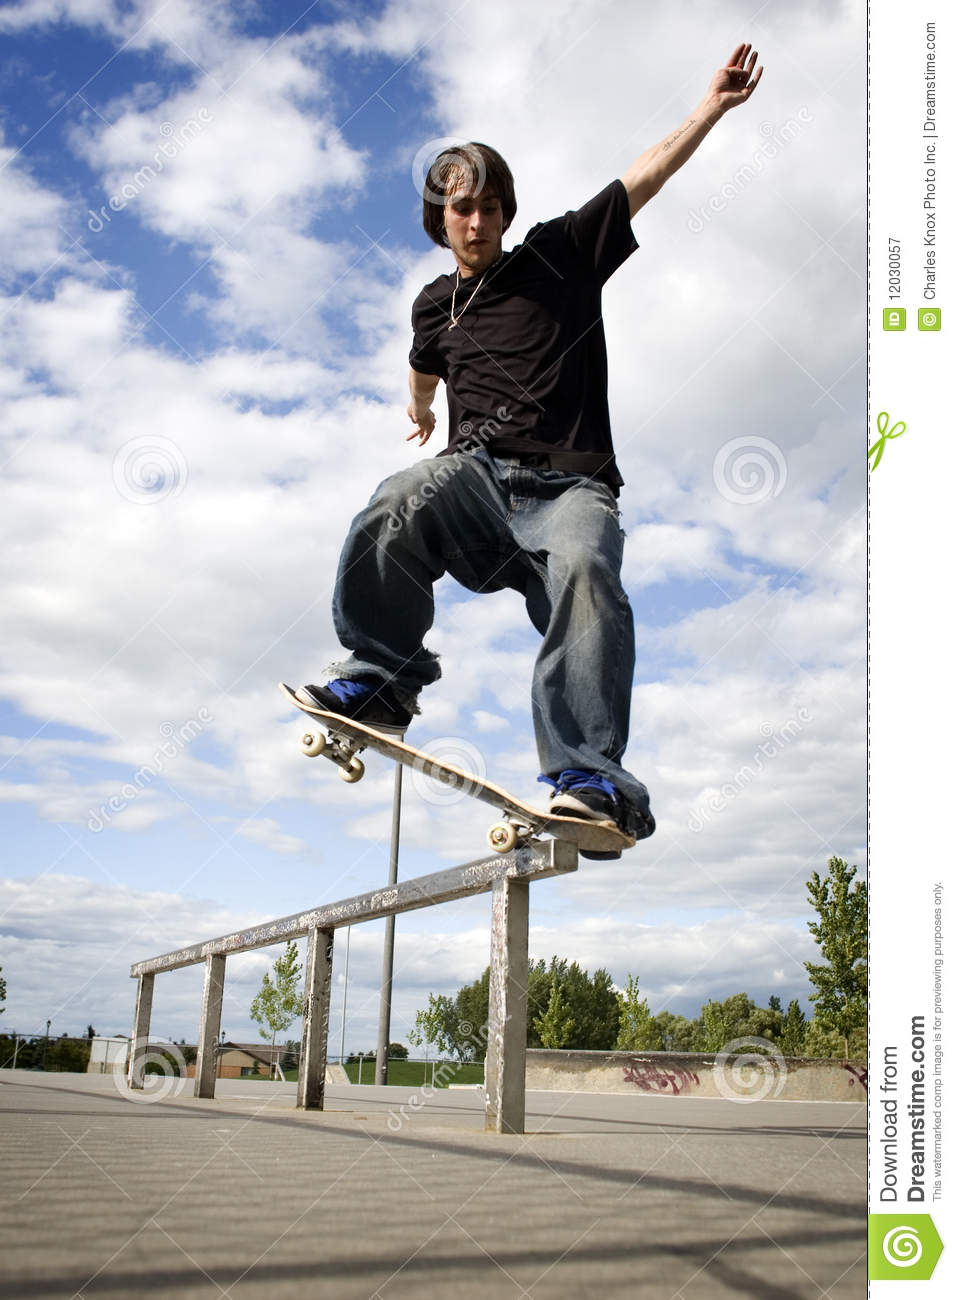 skateboarder doing a crooked grind stock image